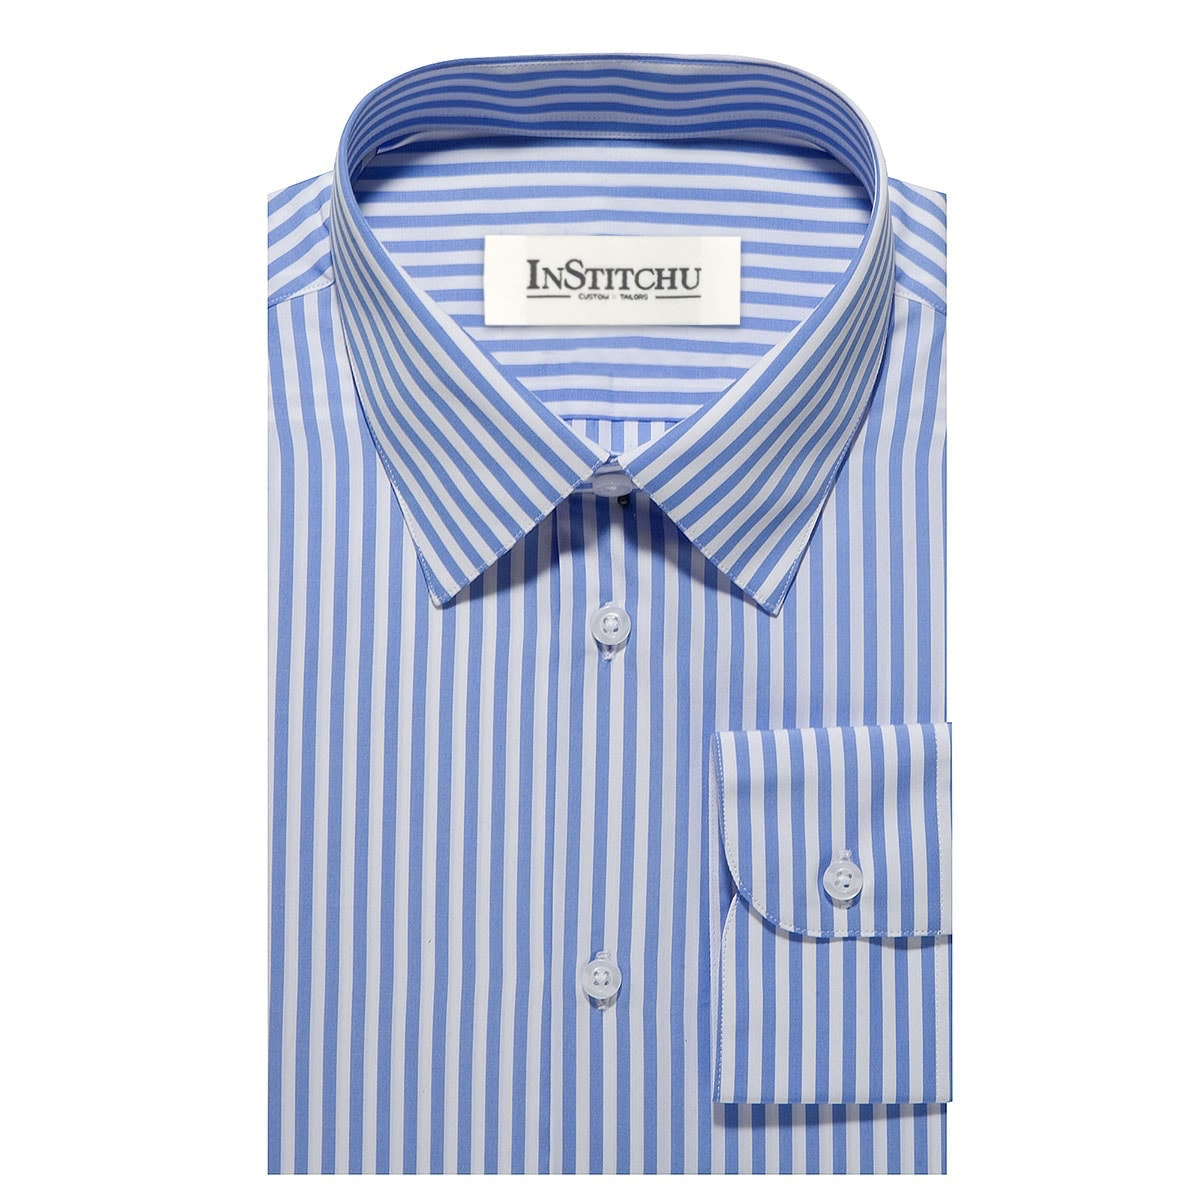 InStitchu Collection The Cottesloe Blue Striped Shirt